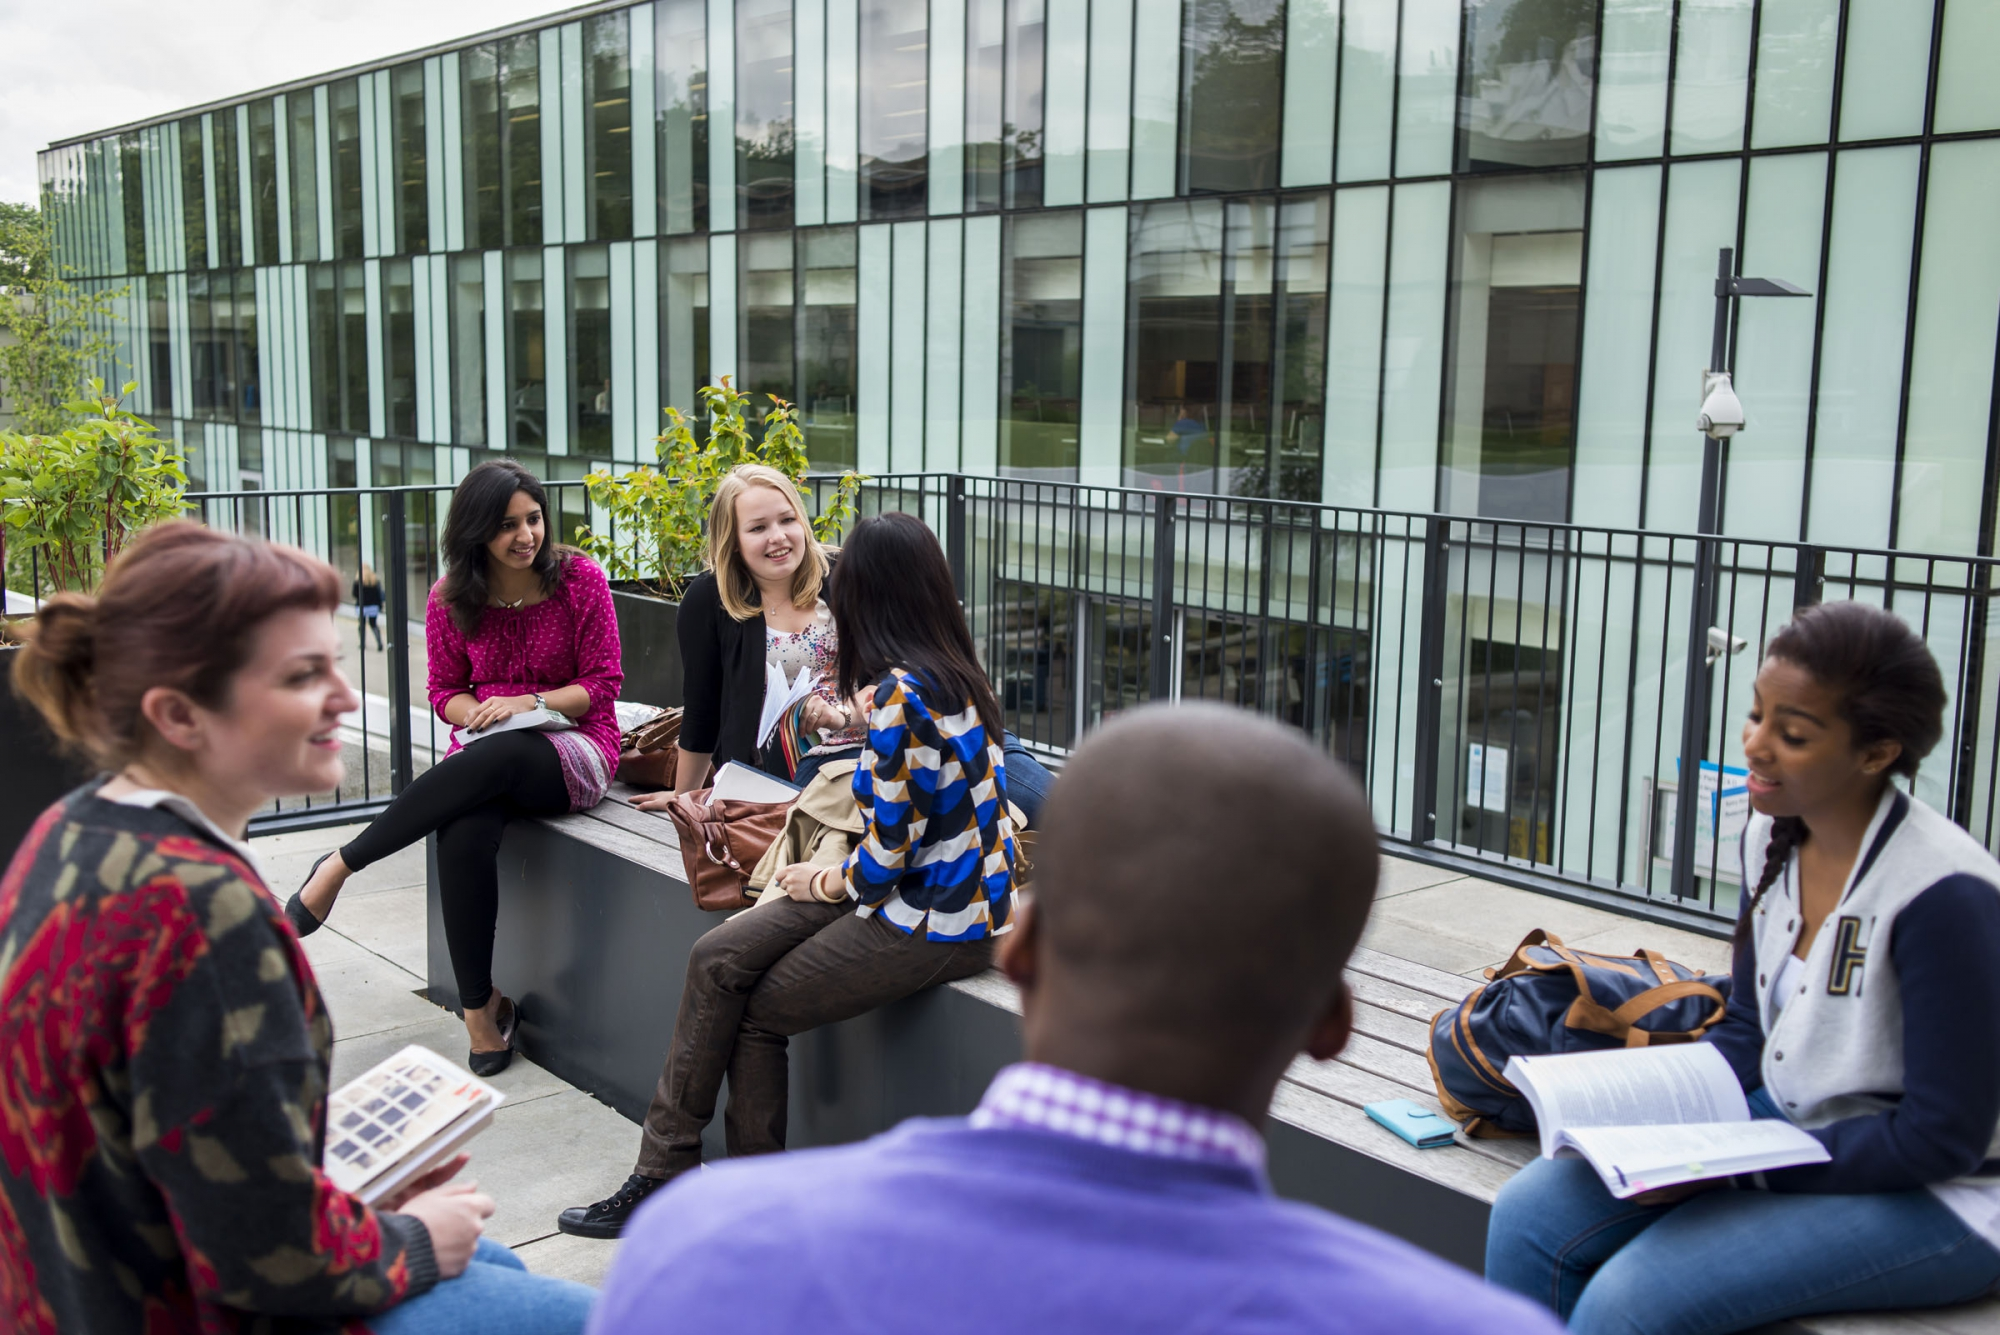 Students using one of the communal areas at Kingston Business School